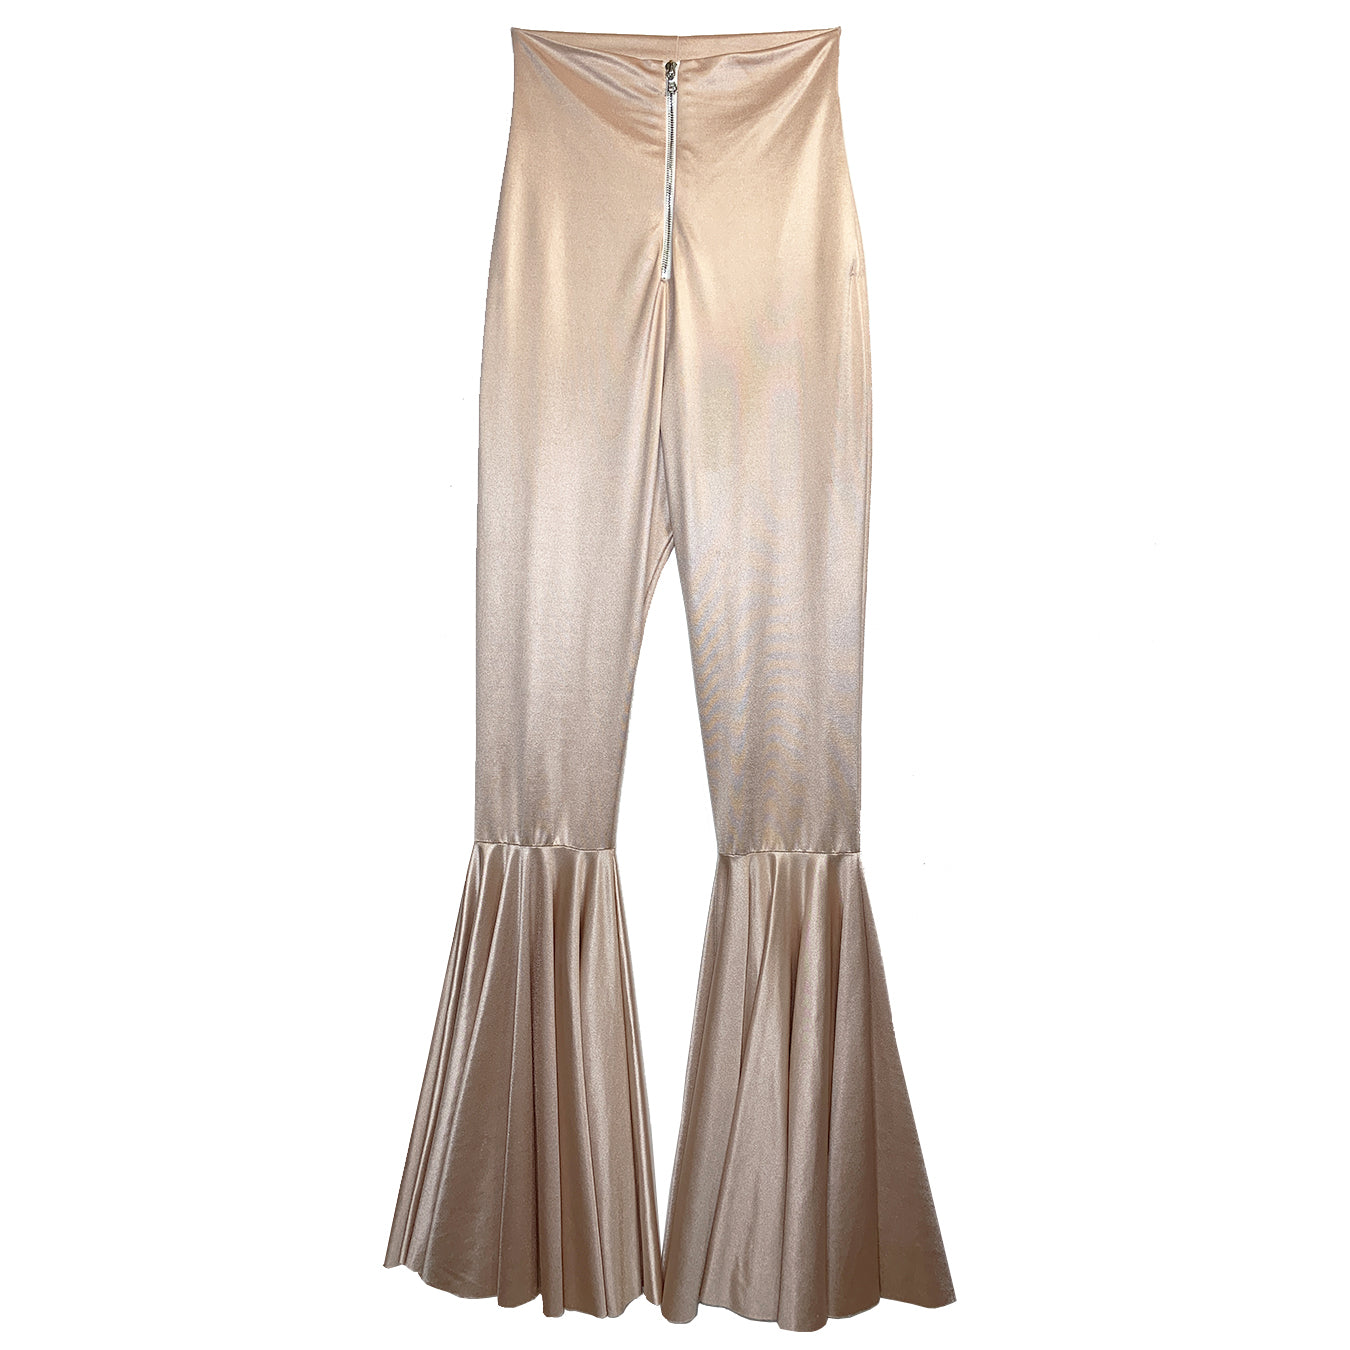 SNATCHED HIGH-WAISTED FLARES